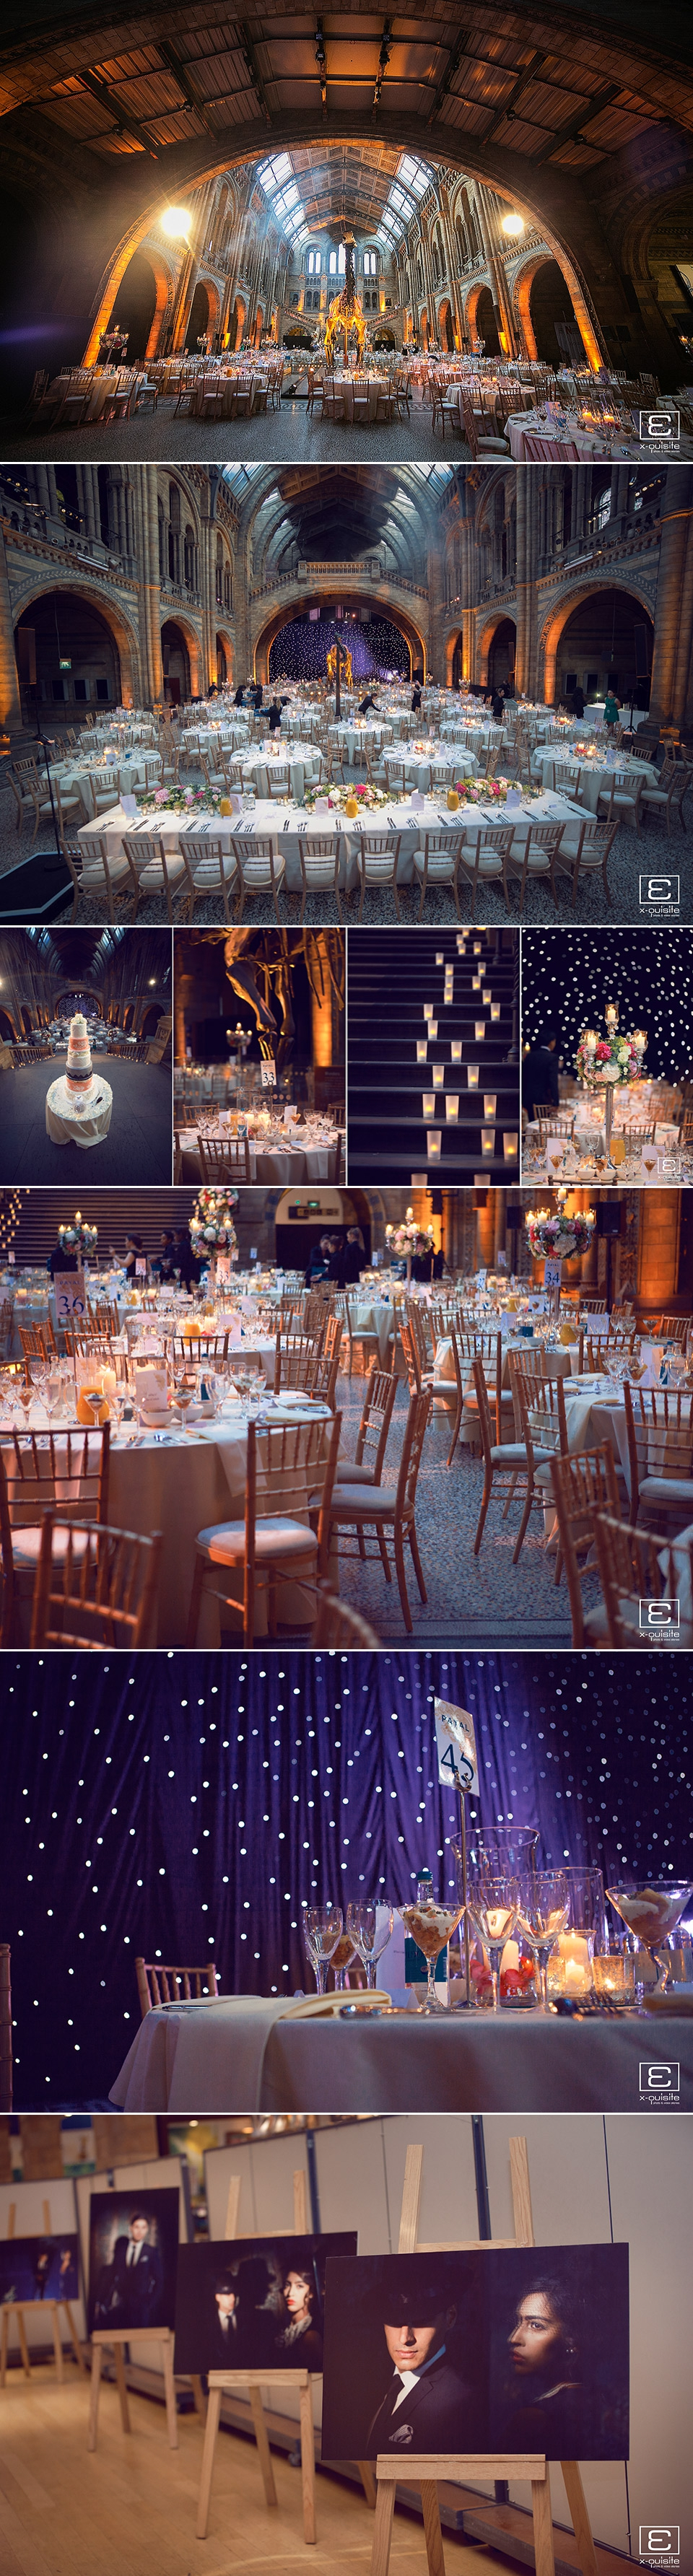 Natural History Museum Wedding Reception 02